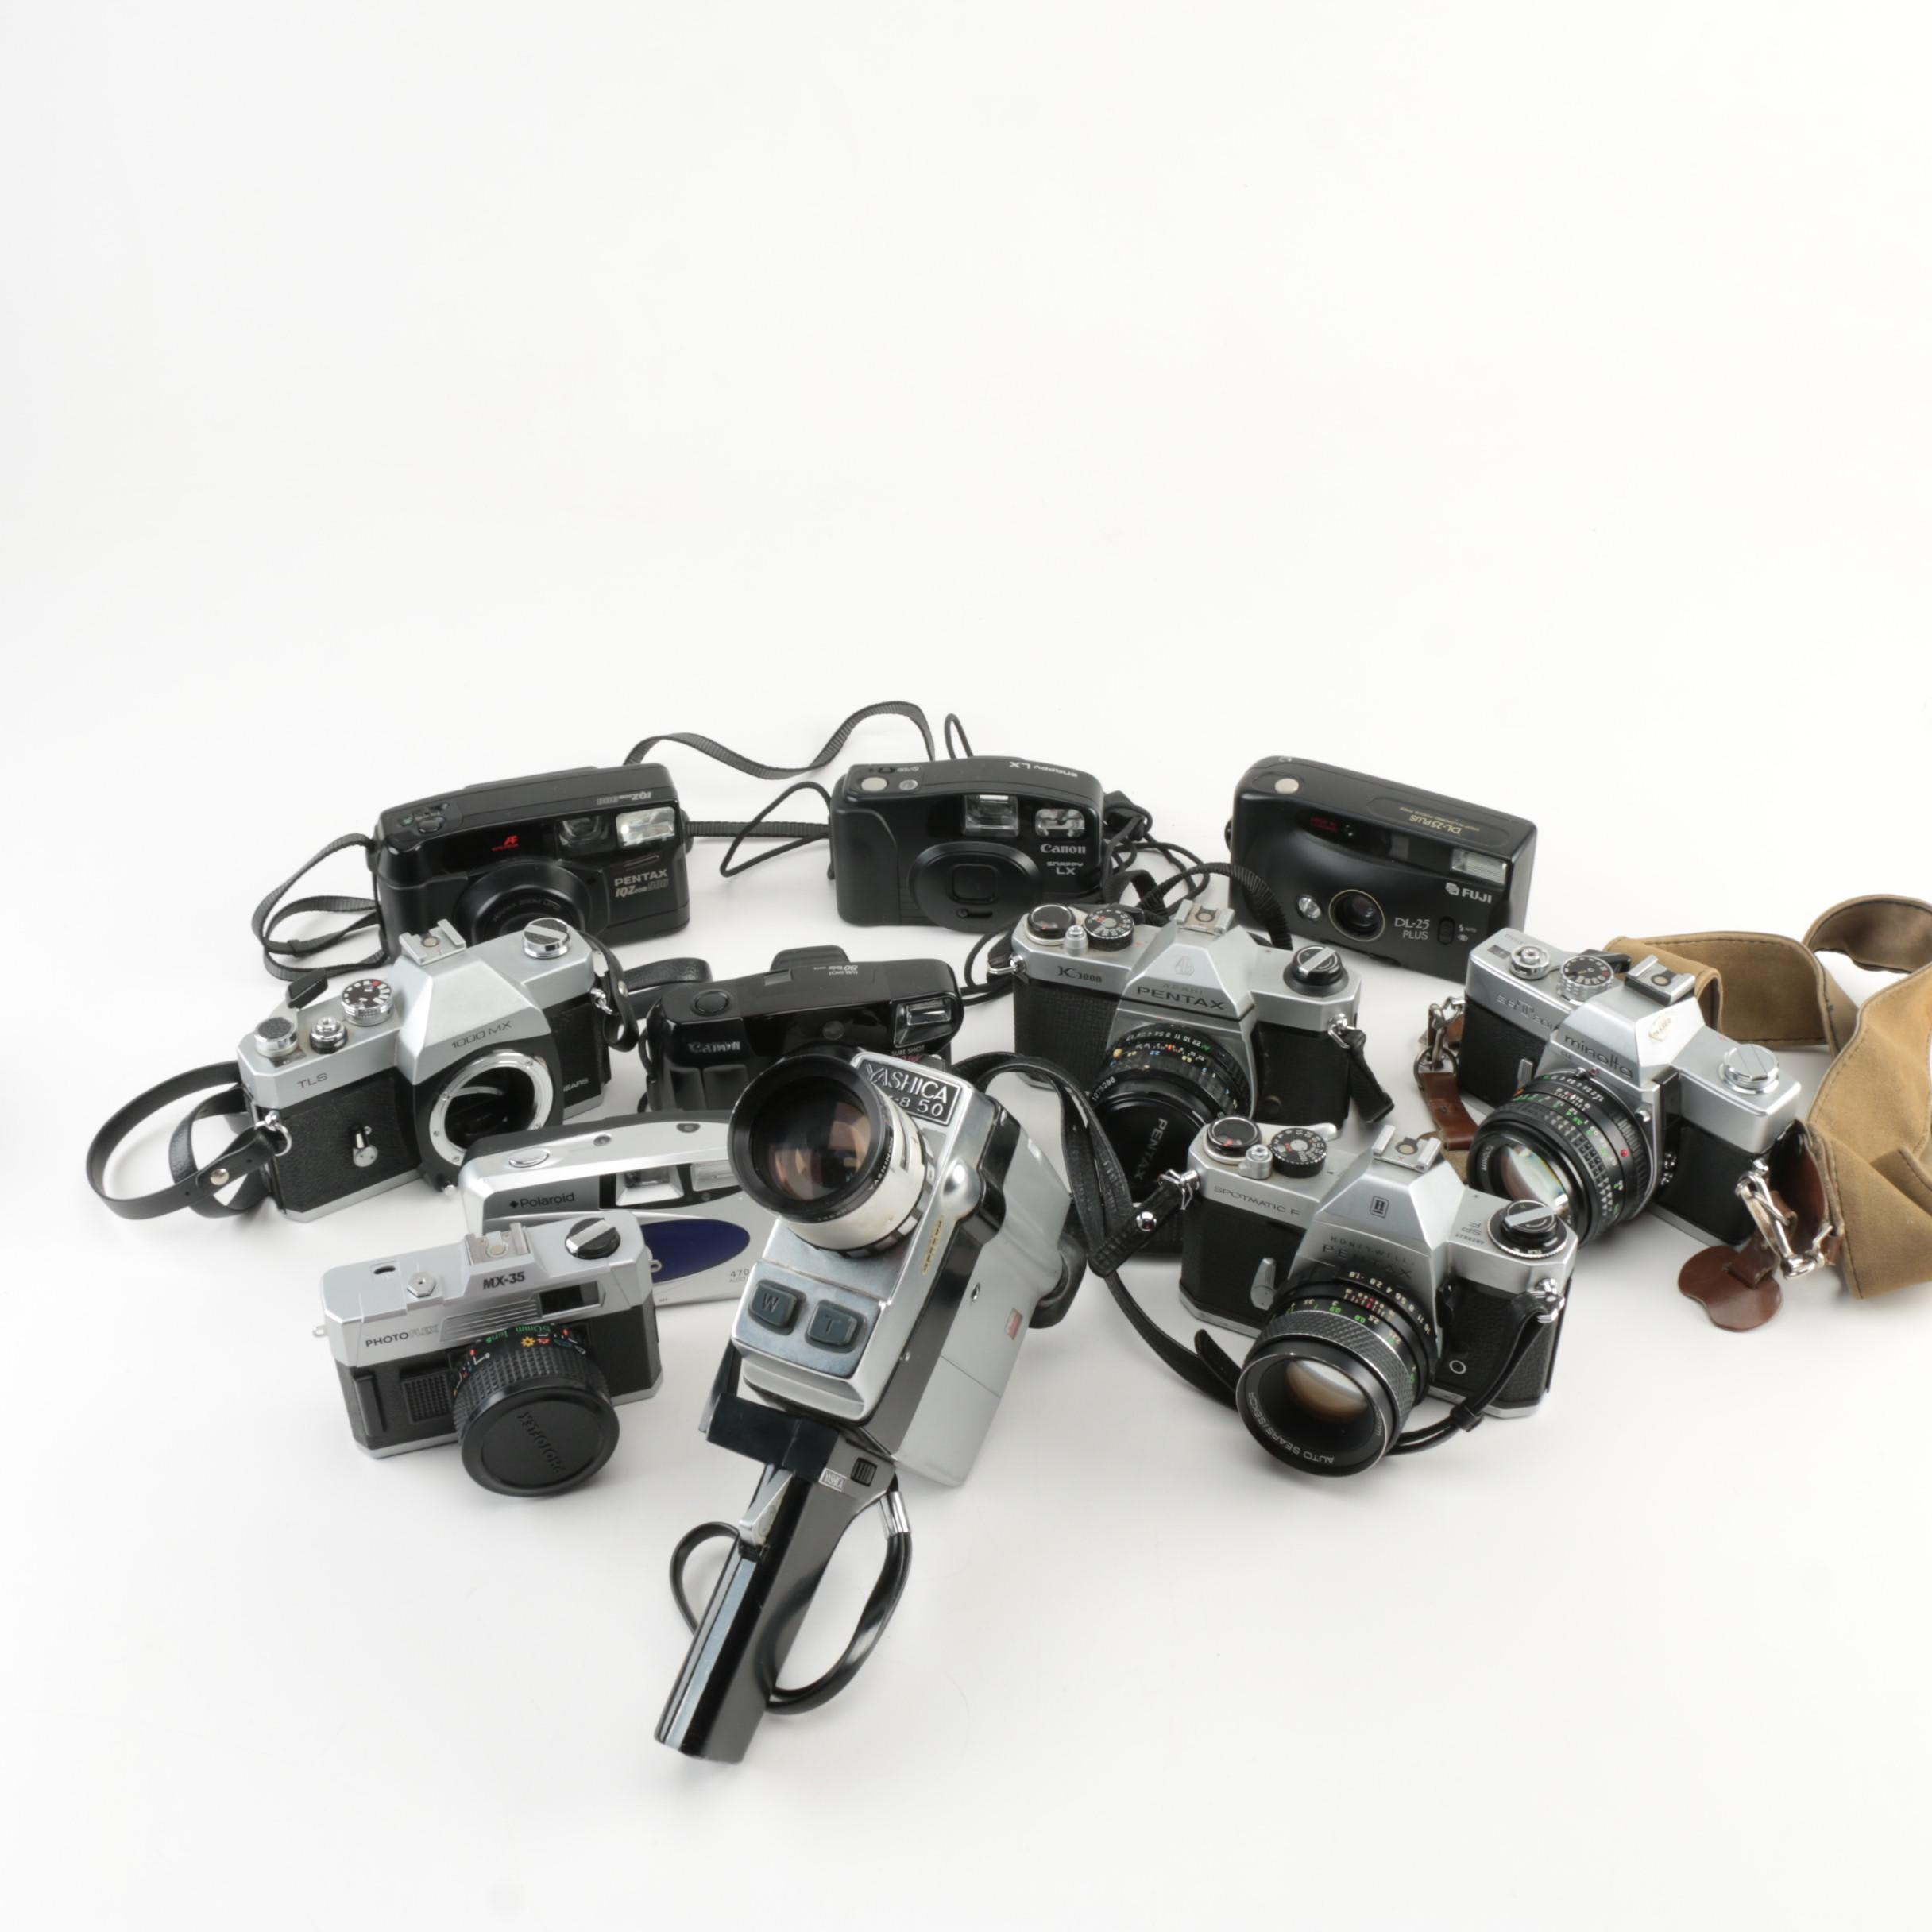 Minolta, Canon and Other Vintage Cameras